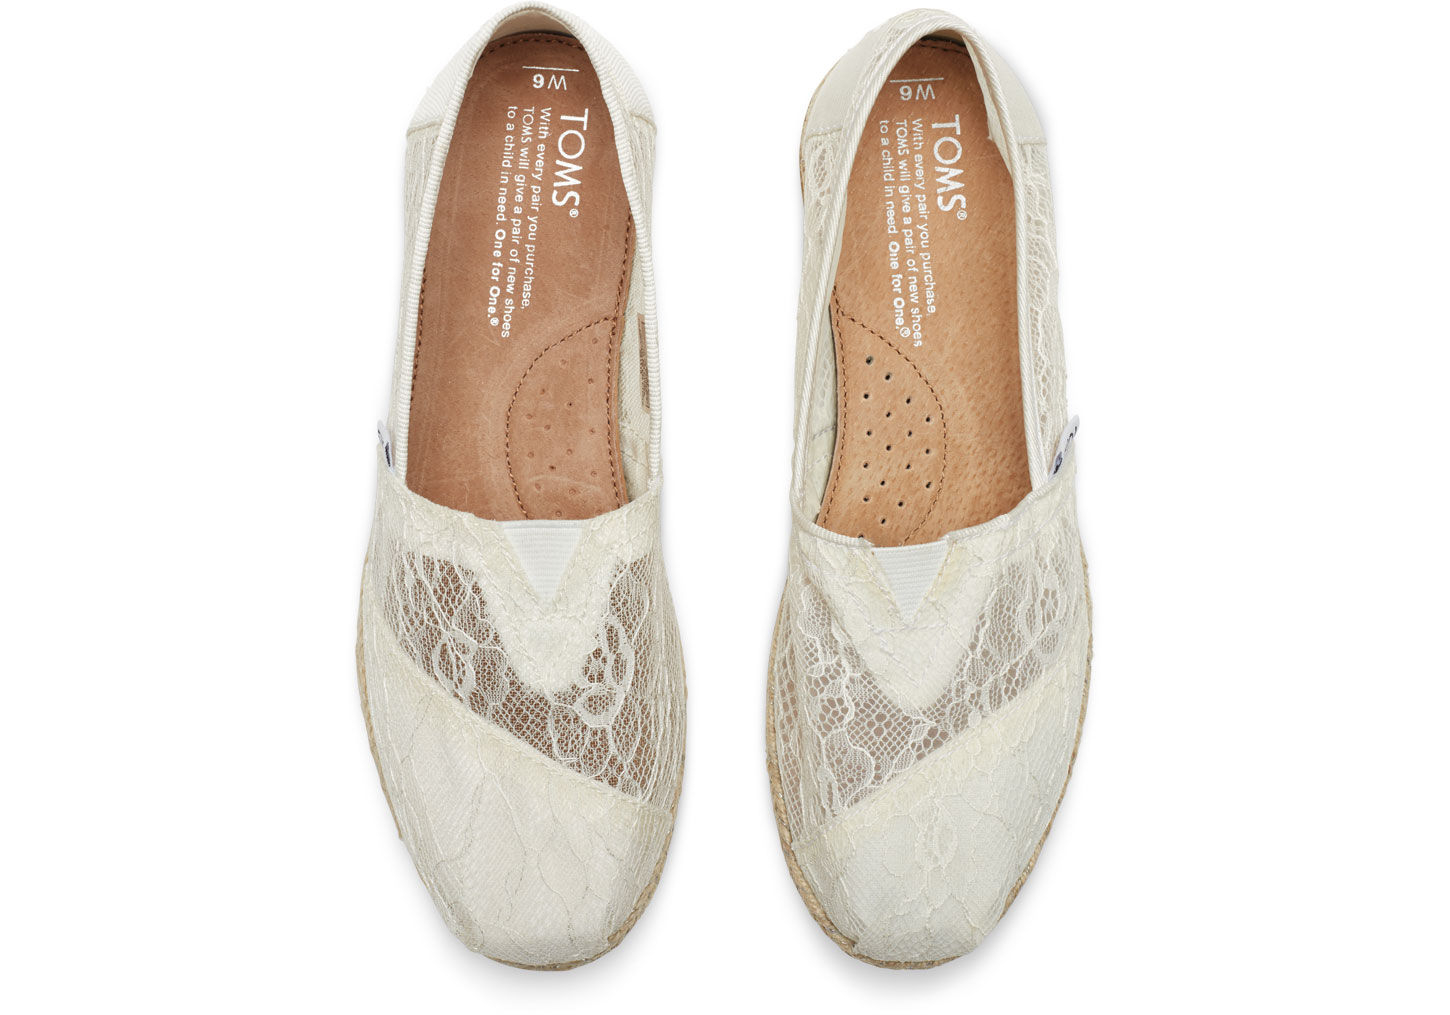 TOMS White Lace Rope Women s Classics in White - Lyst d516e2dbc